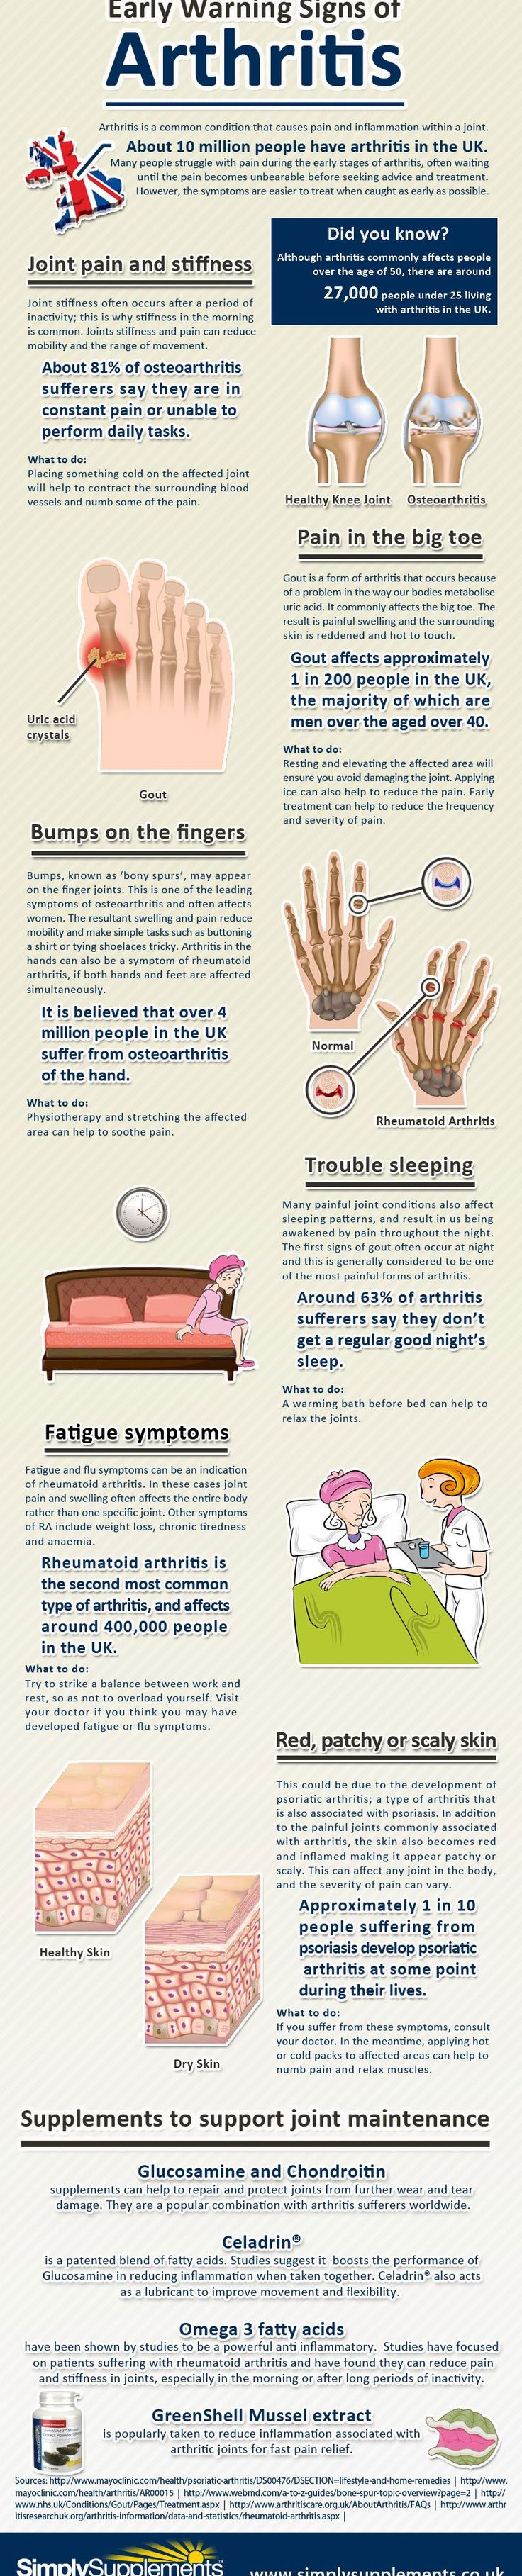 Early Warning Signs of Arthritis Infographic